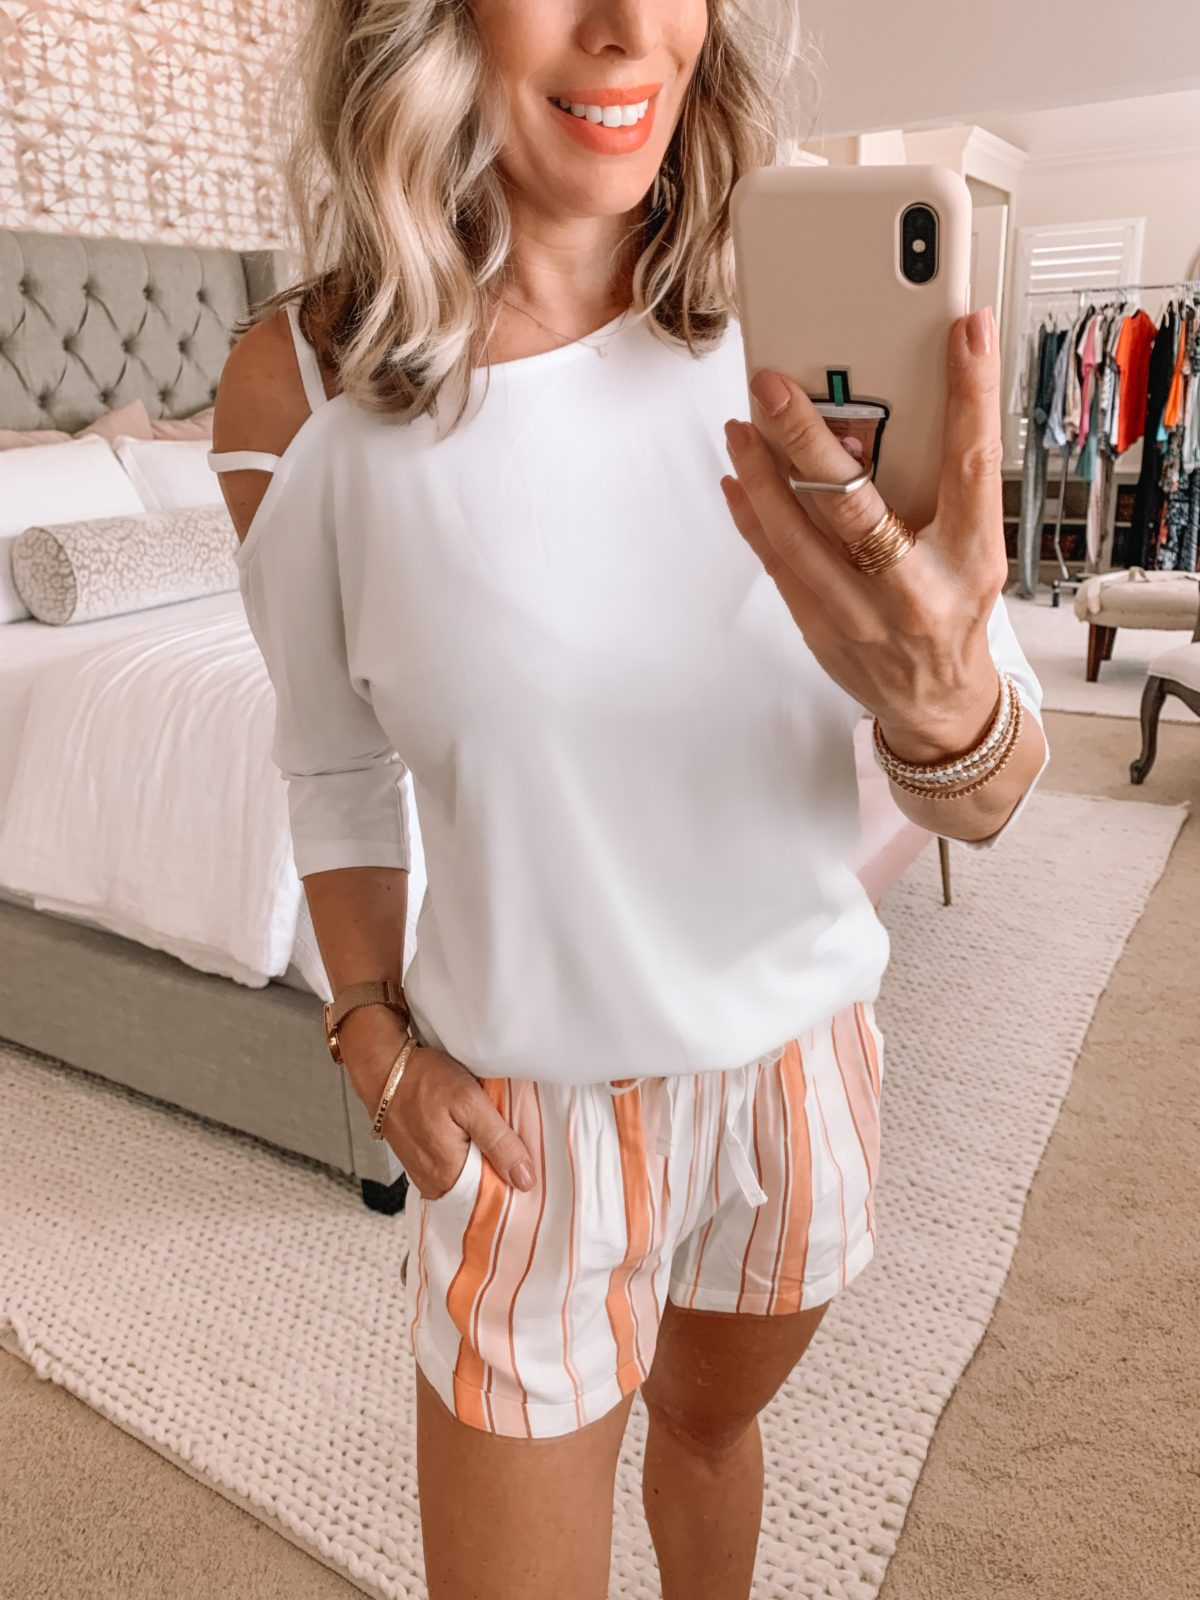 Amazon Fashion Finds, One Shoulder Strappy Top, Striped Shorts